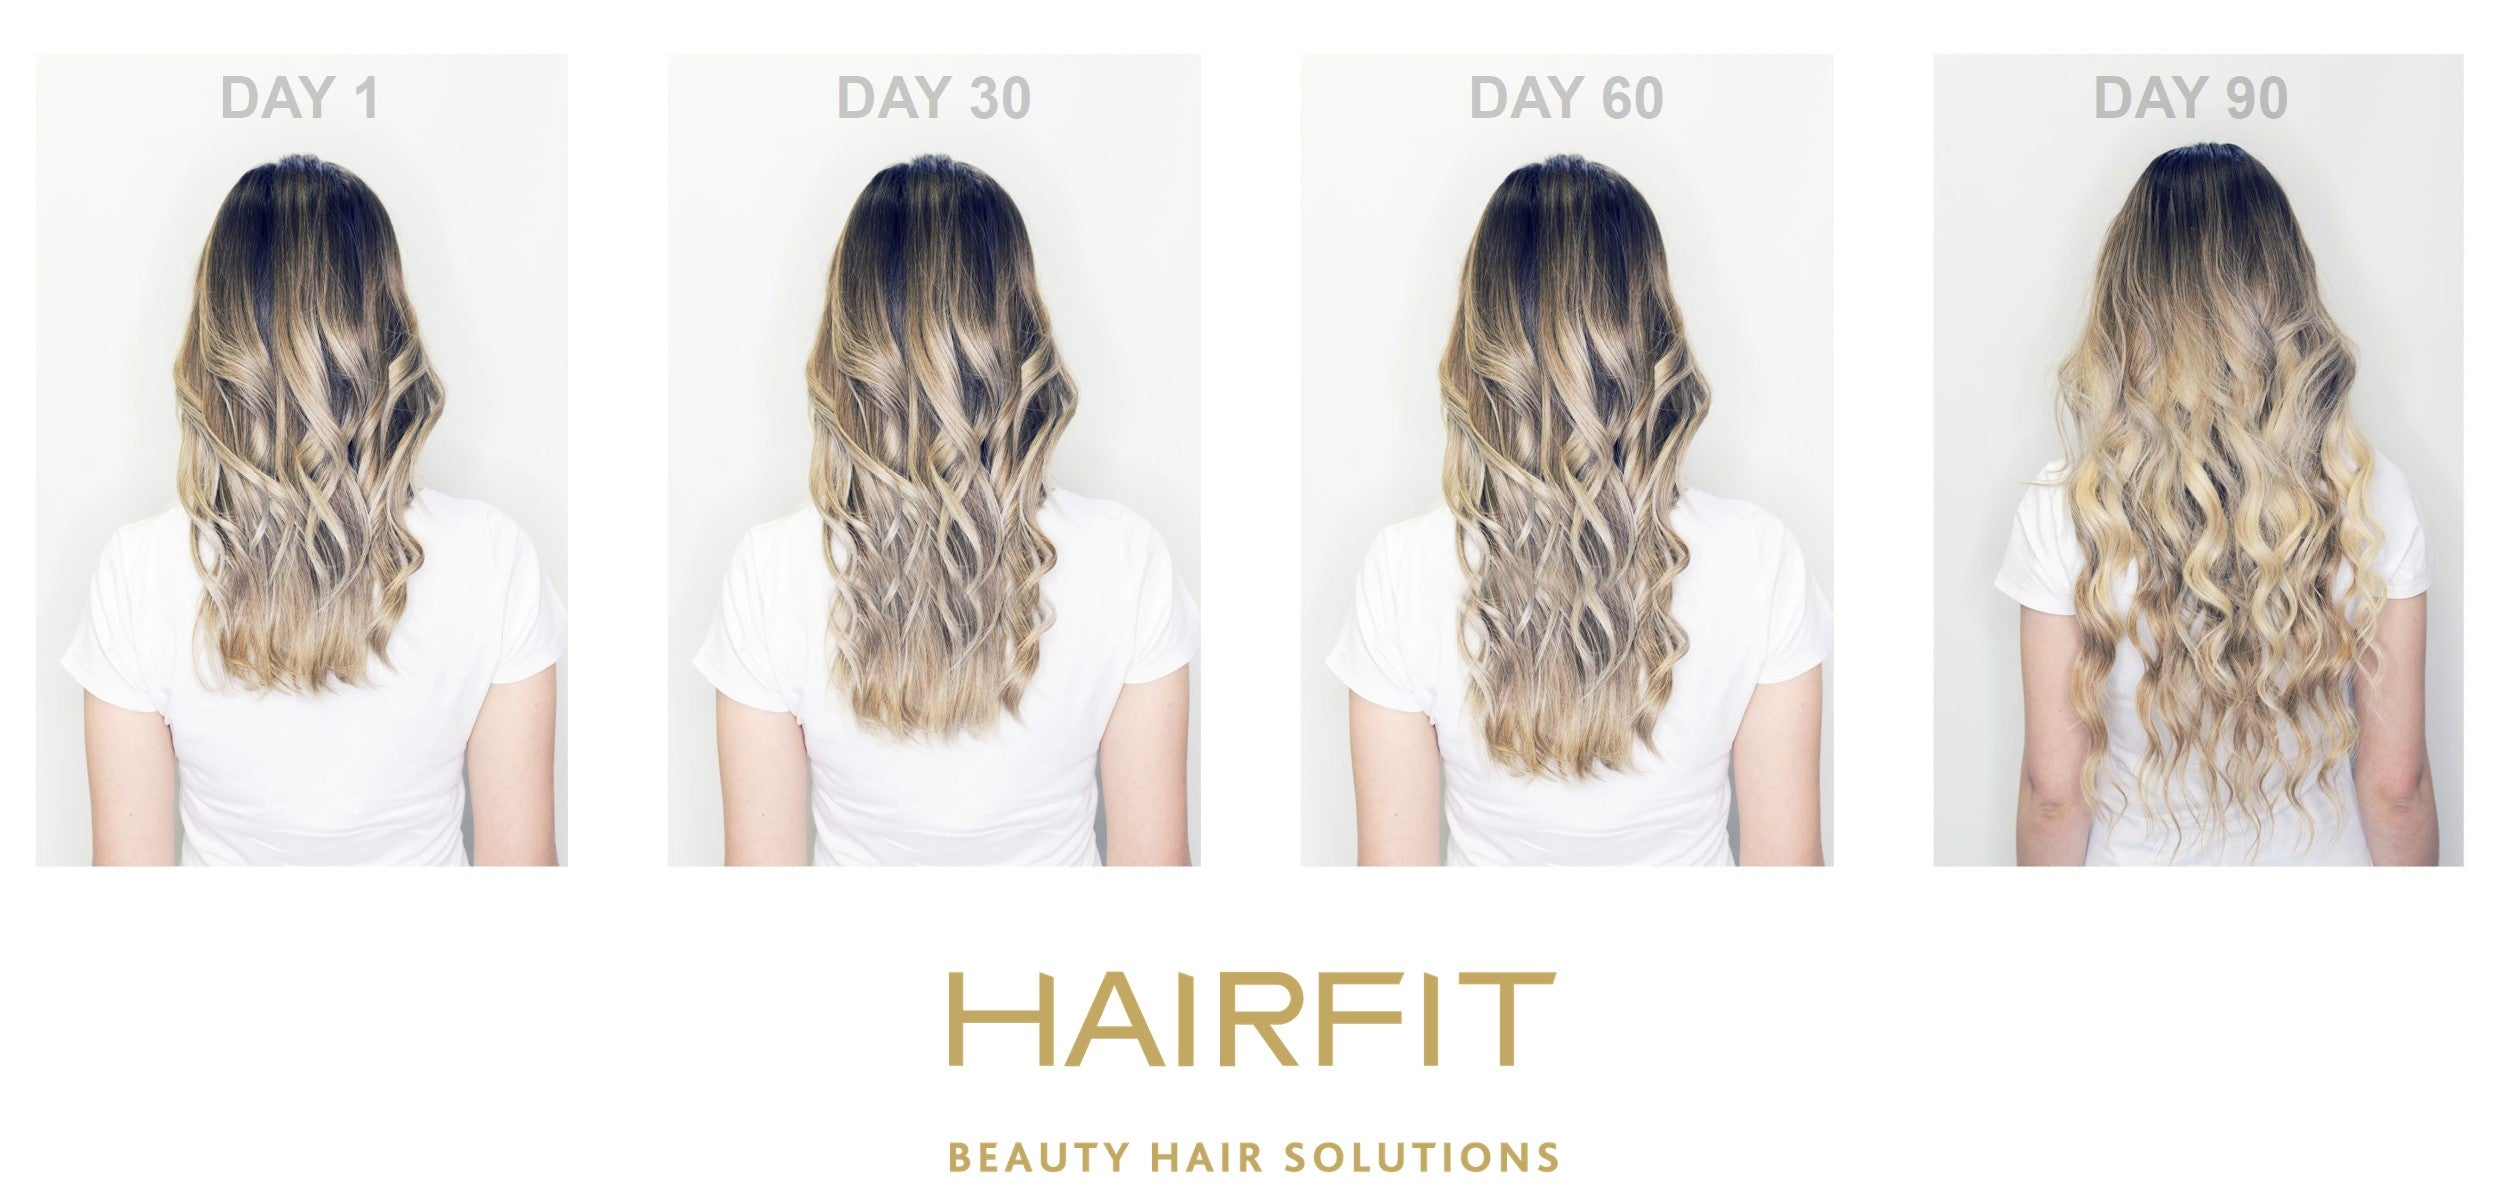 HAIRFIT - Hair care vitamins: Hair loss cure & accelerate growth treatment